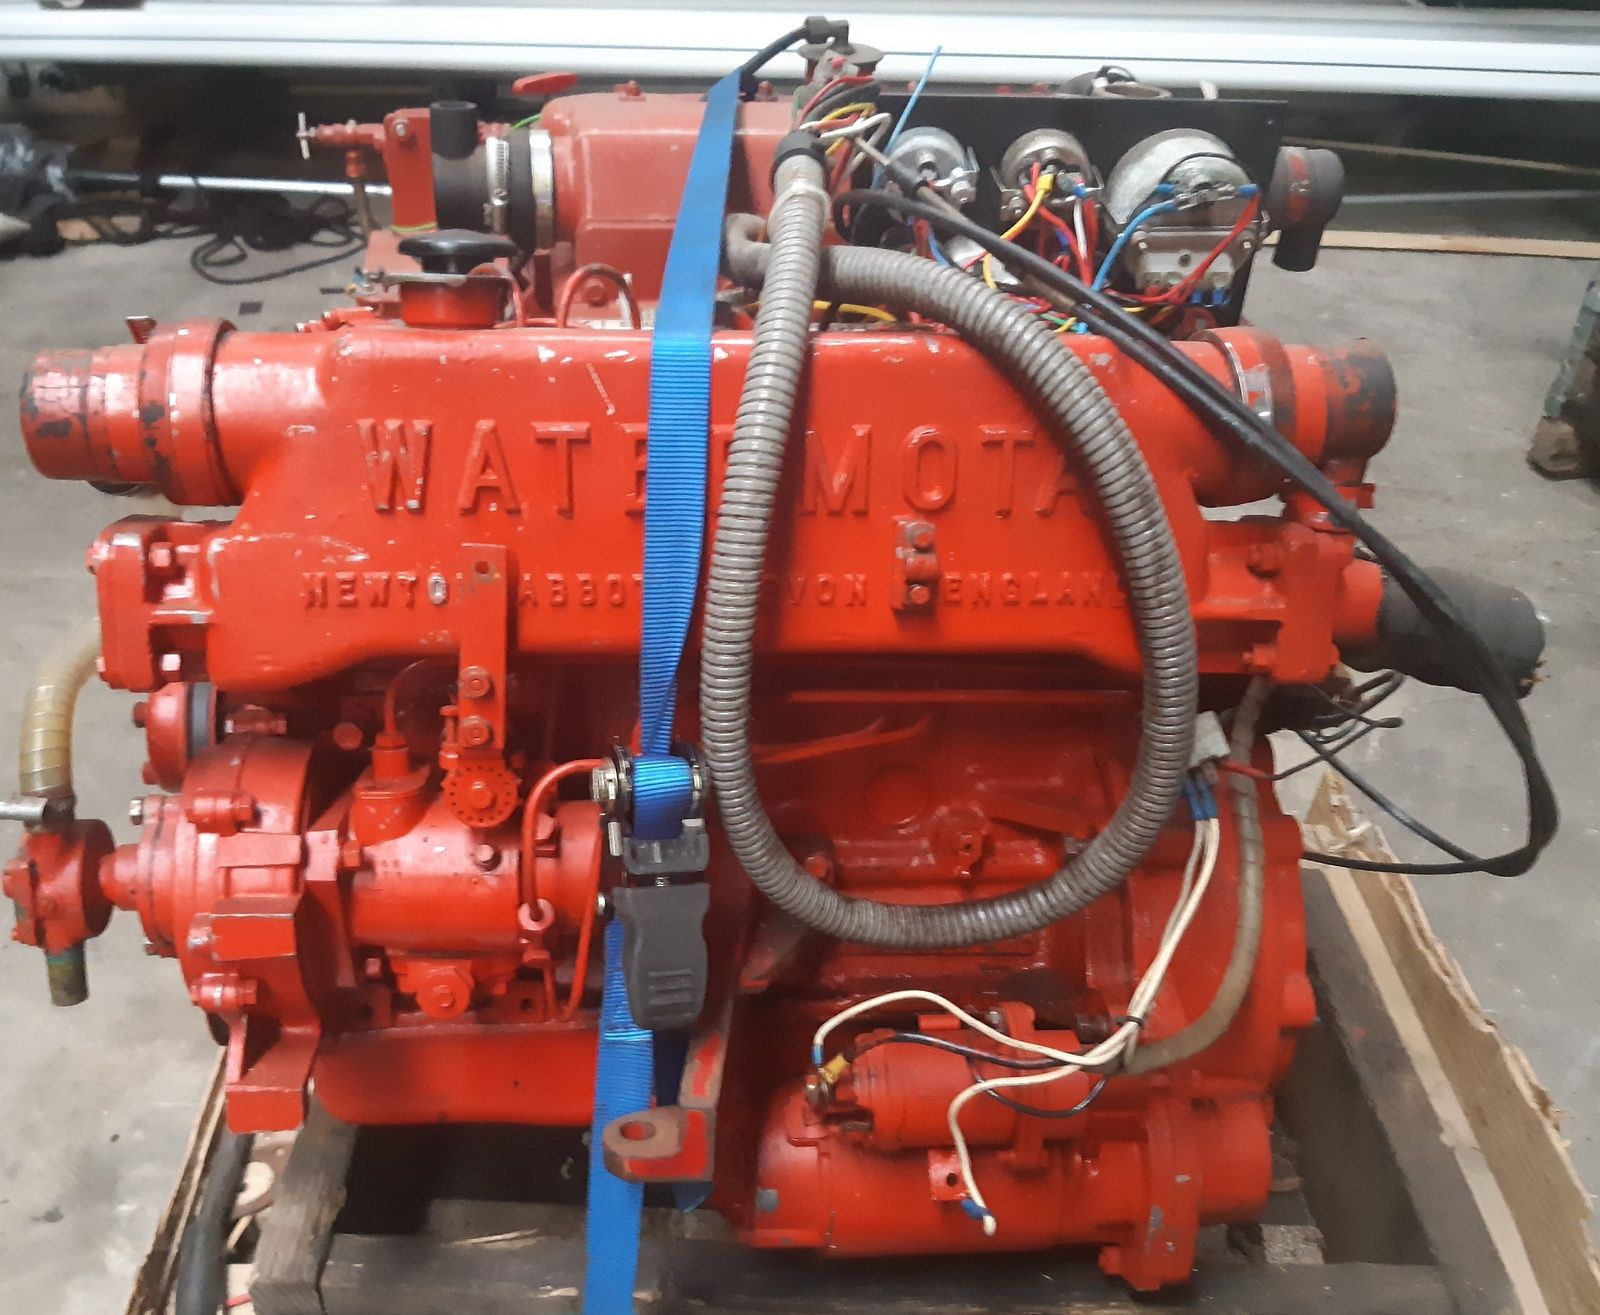 Https Www Bonanza Com Listings Ford Watermota Seapanther 4 Cylinder 30 Hp Freshwater Cooling 818063629 Engines For Sale Marine Diesel Engine Ford